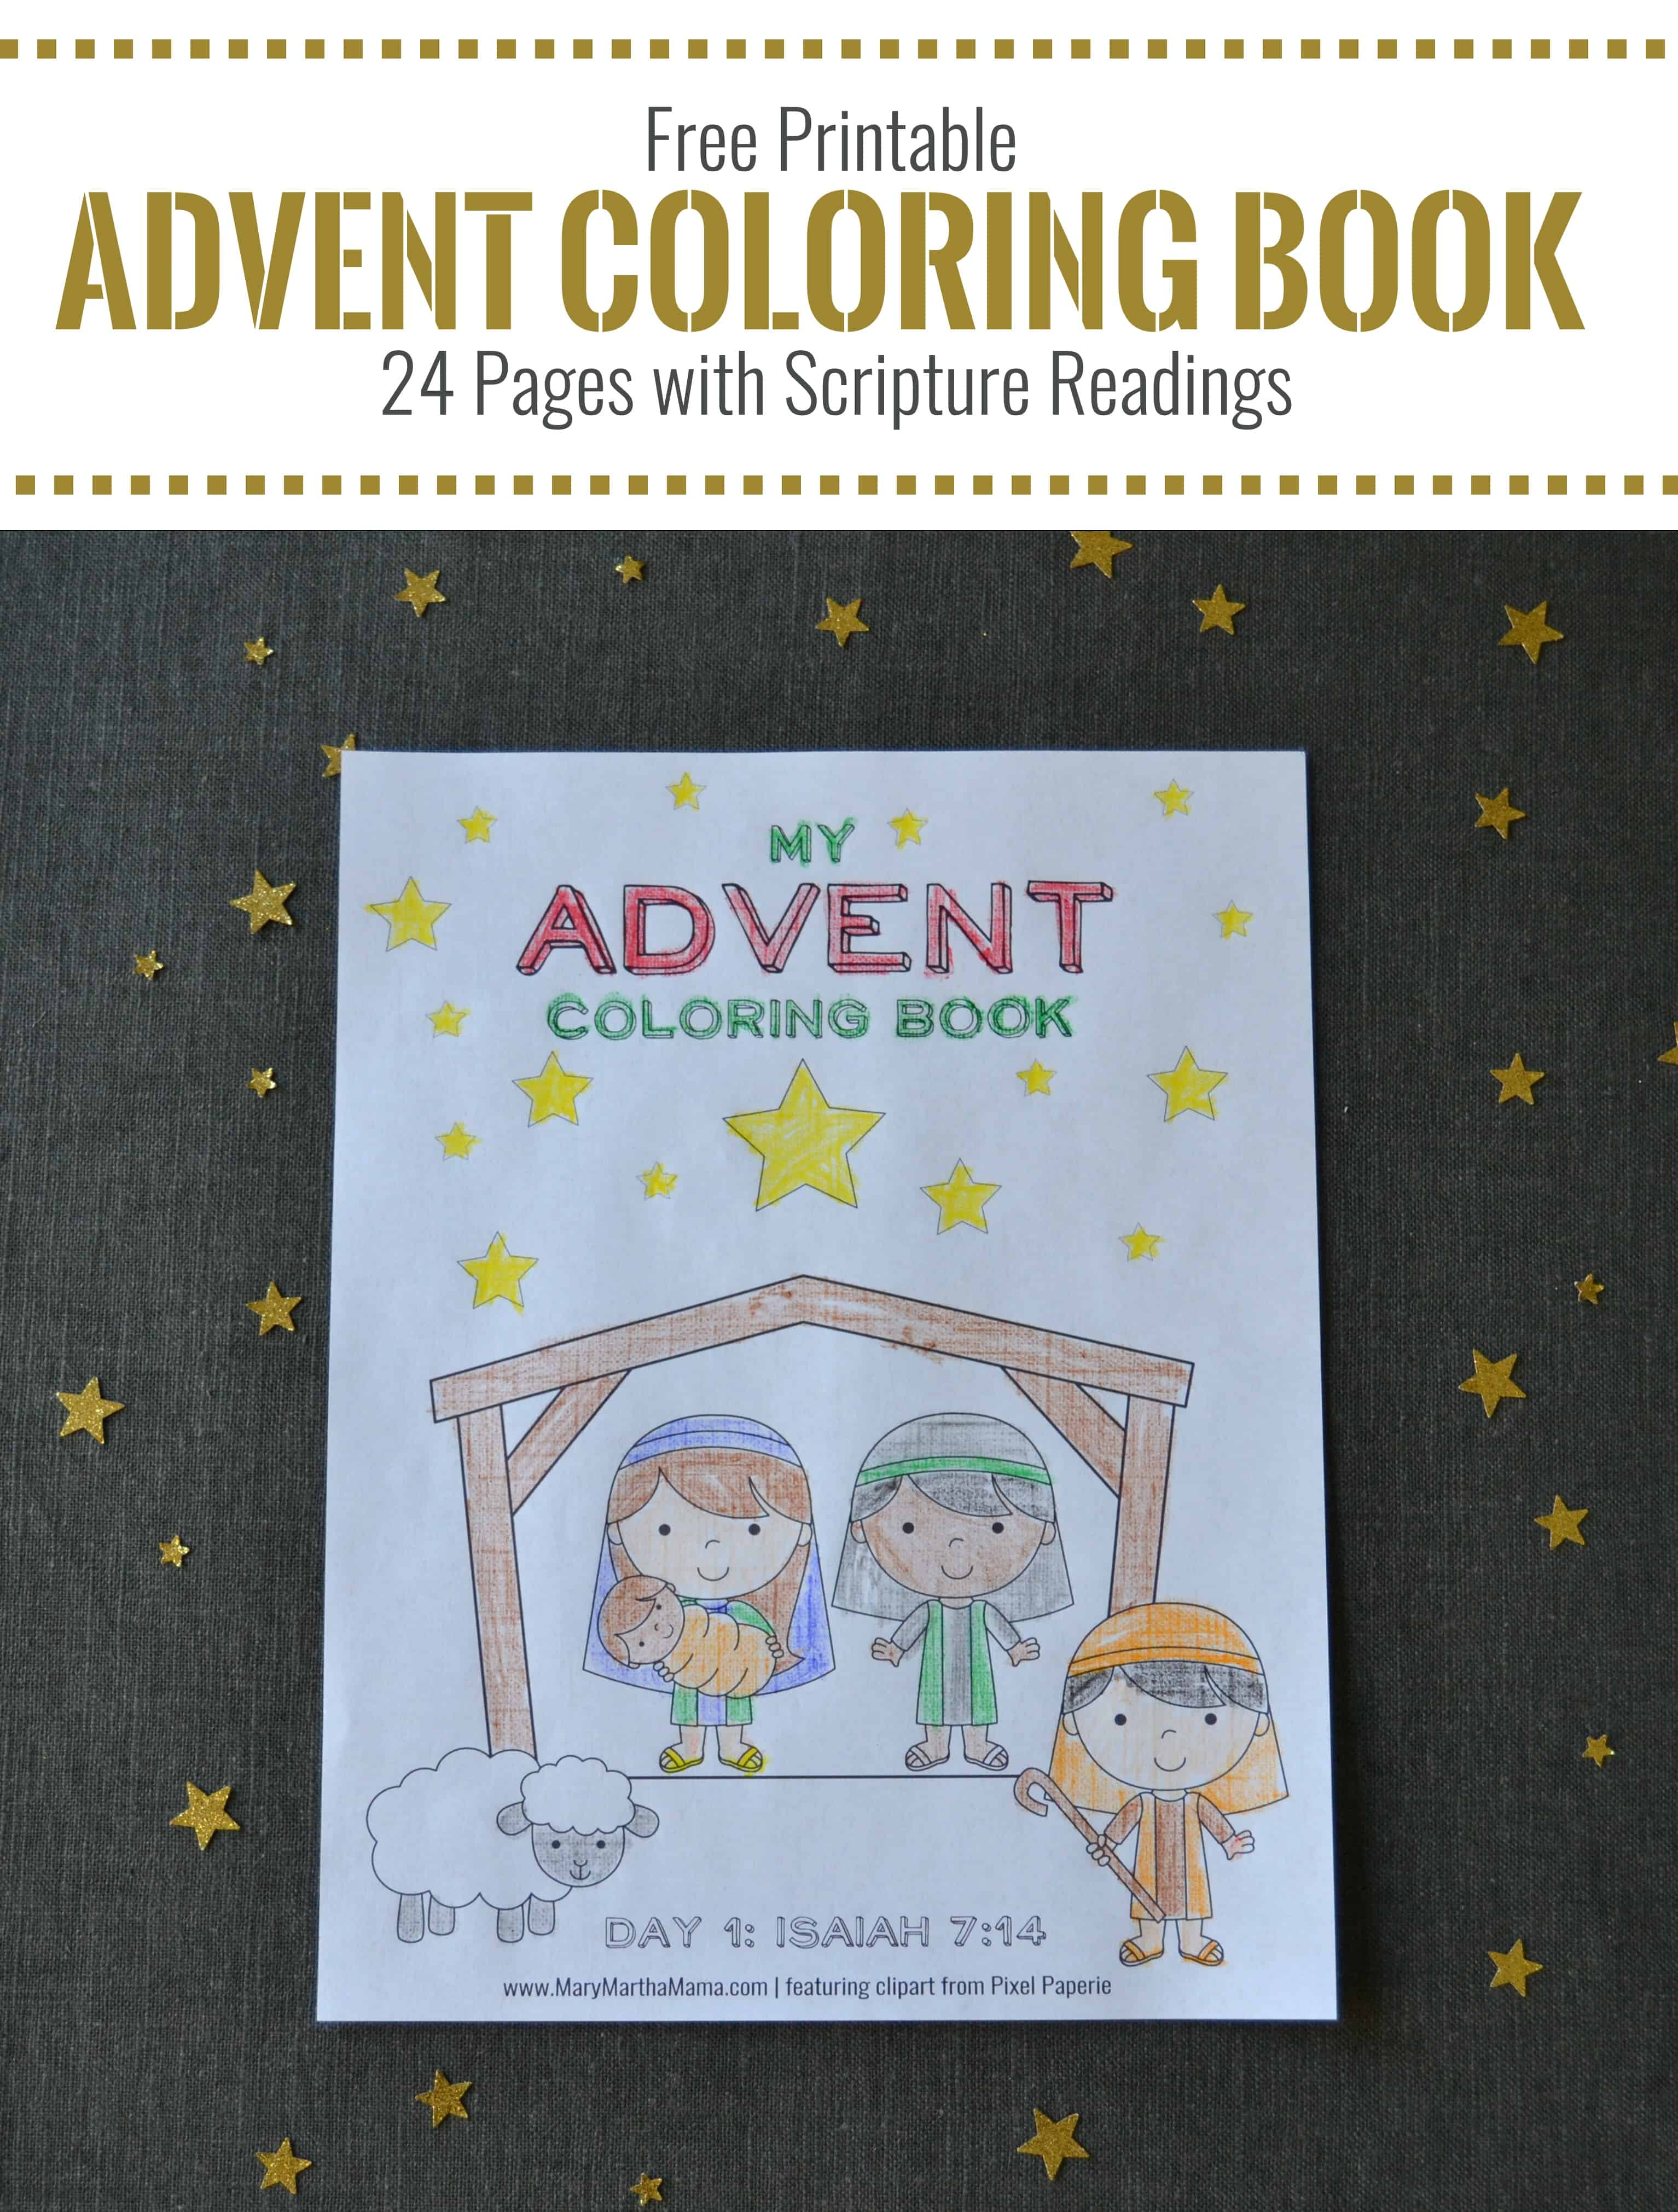 advent-coloring-book-free-24-page-printable-advent-coloring-book-with-daily-scripture-readings-for-christmas